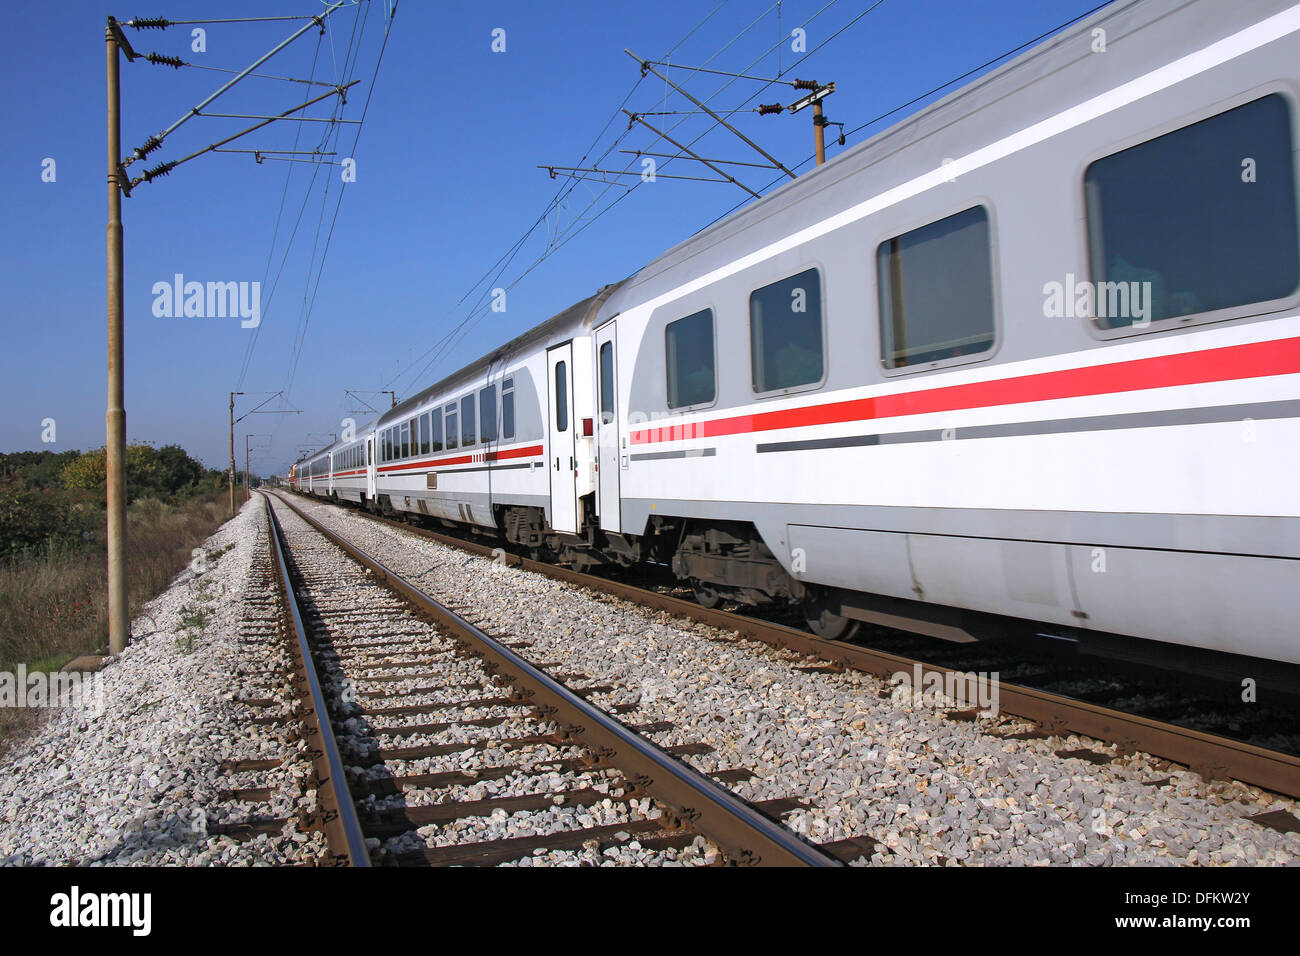 Passenger train passing railroad on a sunny day - Stock Image